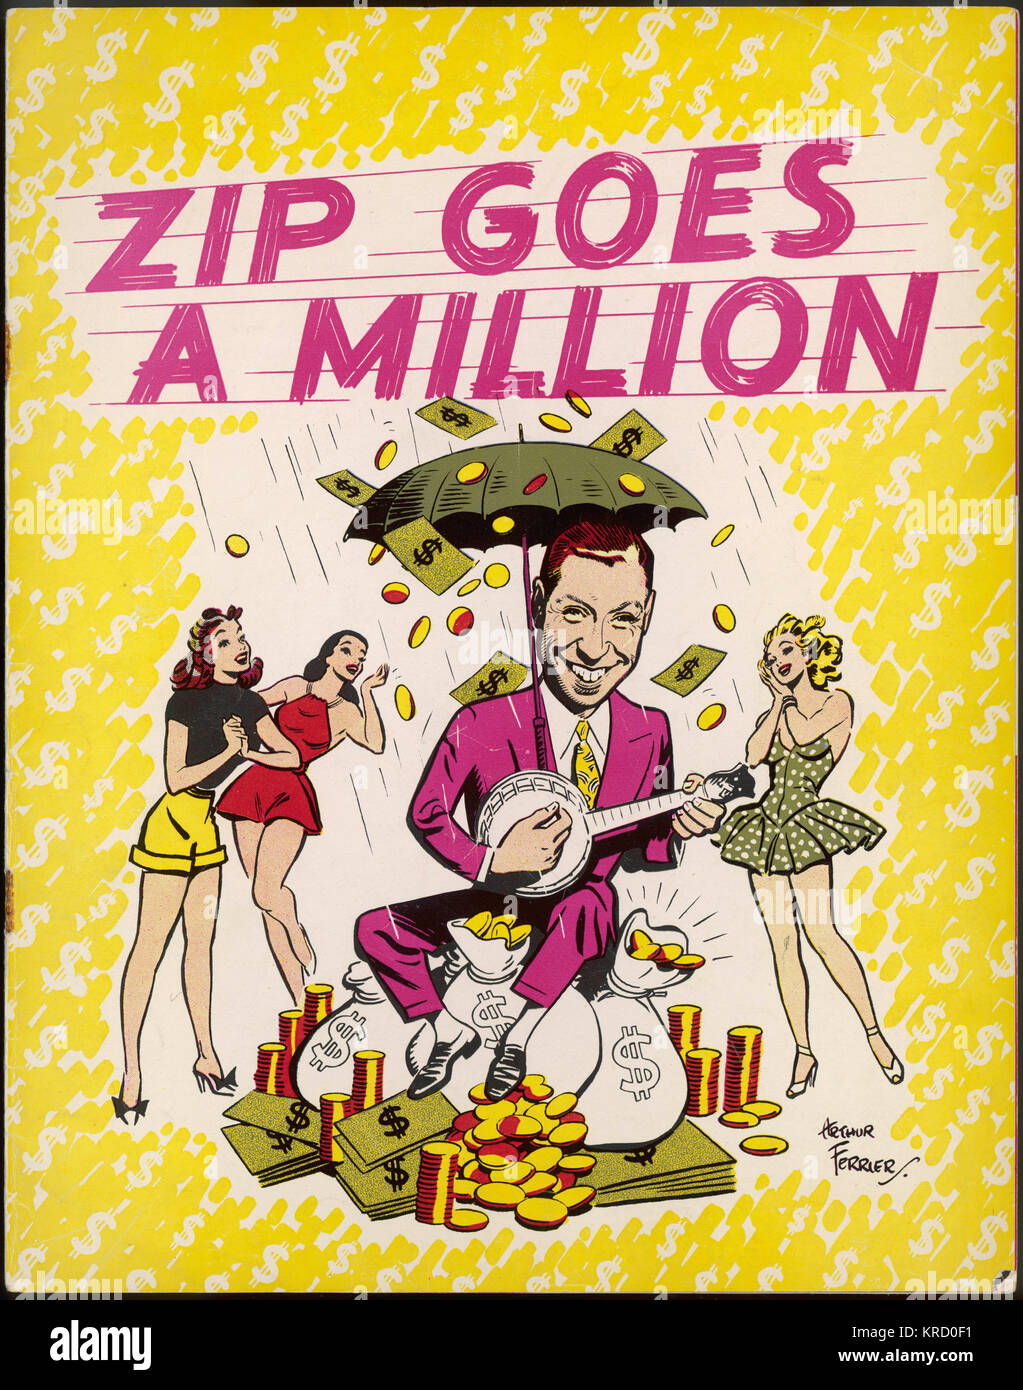 Colour theatre programme cover for a music revue, Zip Goes a Million with George Formby in a starring role.  The - Stock Image